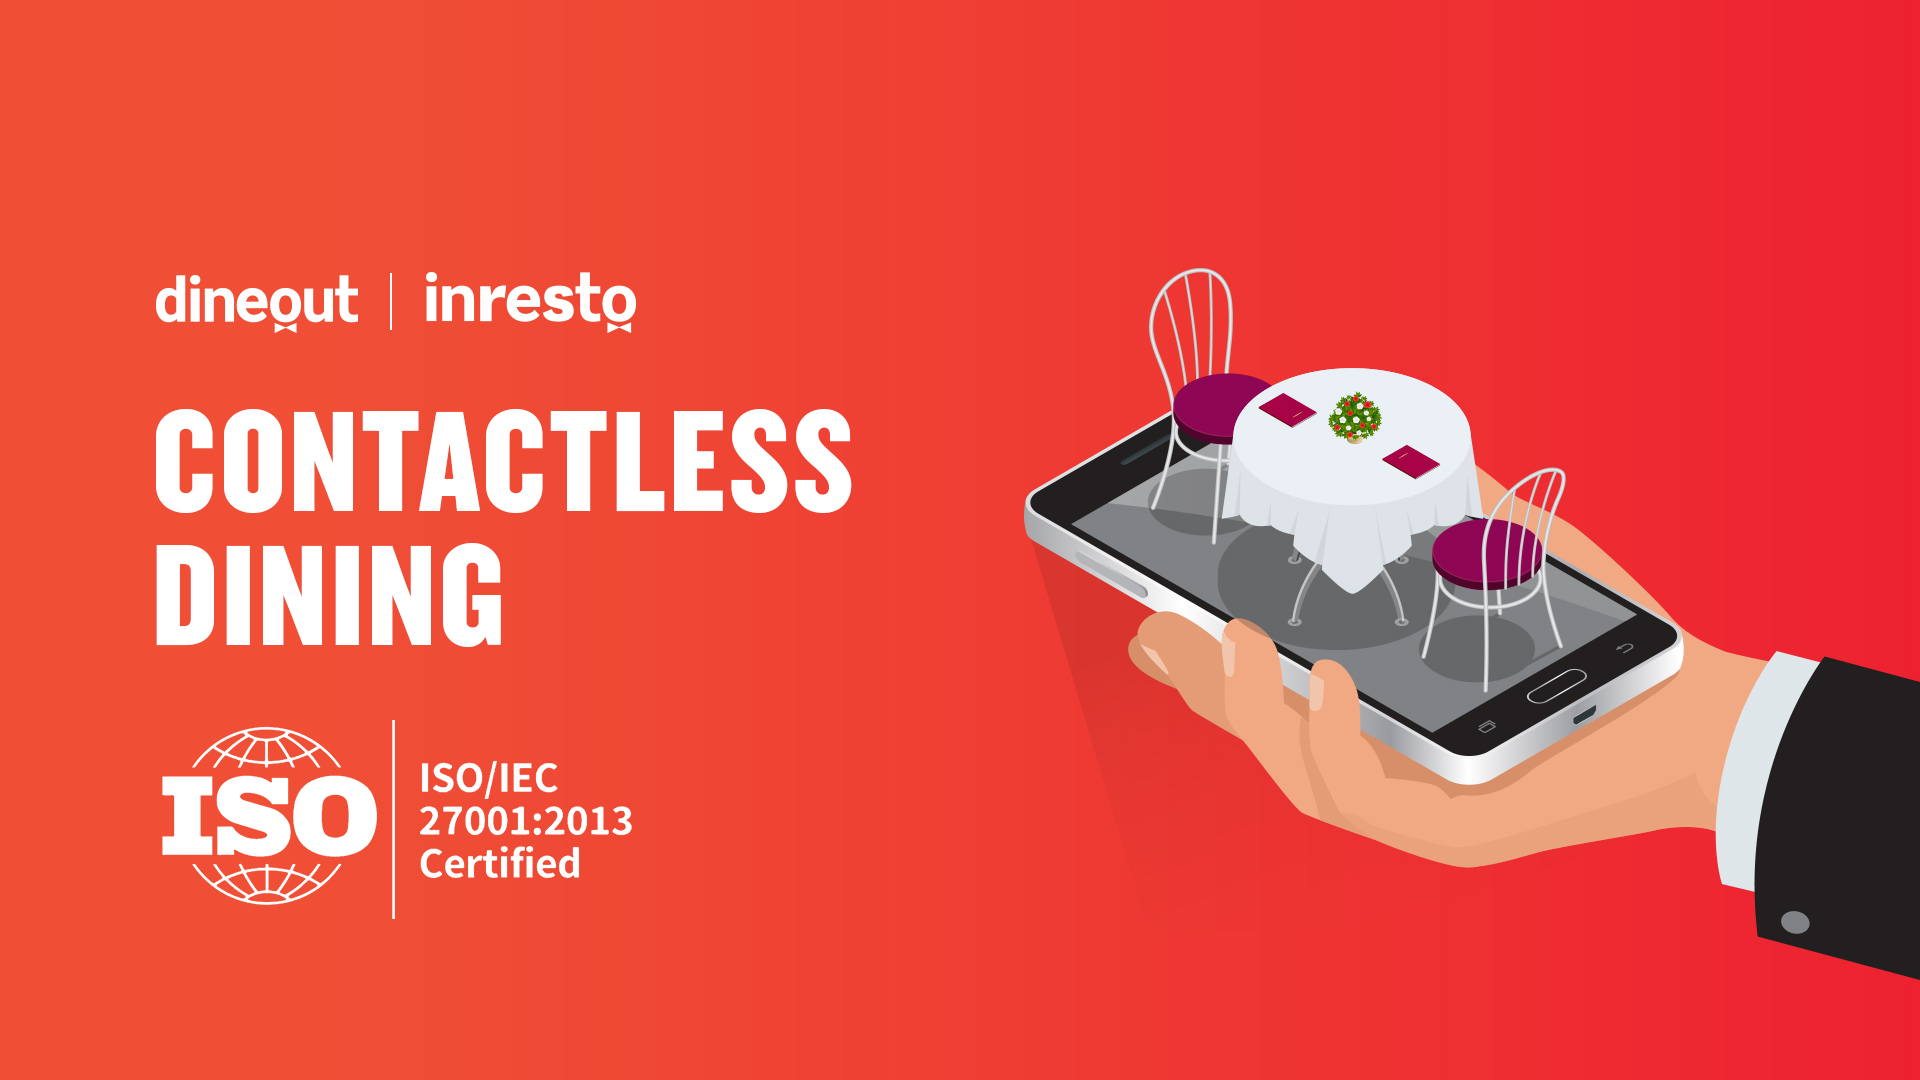 inresto's Contactless Dining | Paving the Future of the Middle Eastern Restaurant Industry